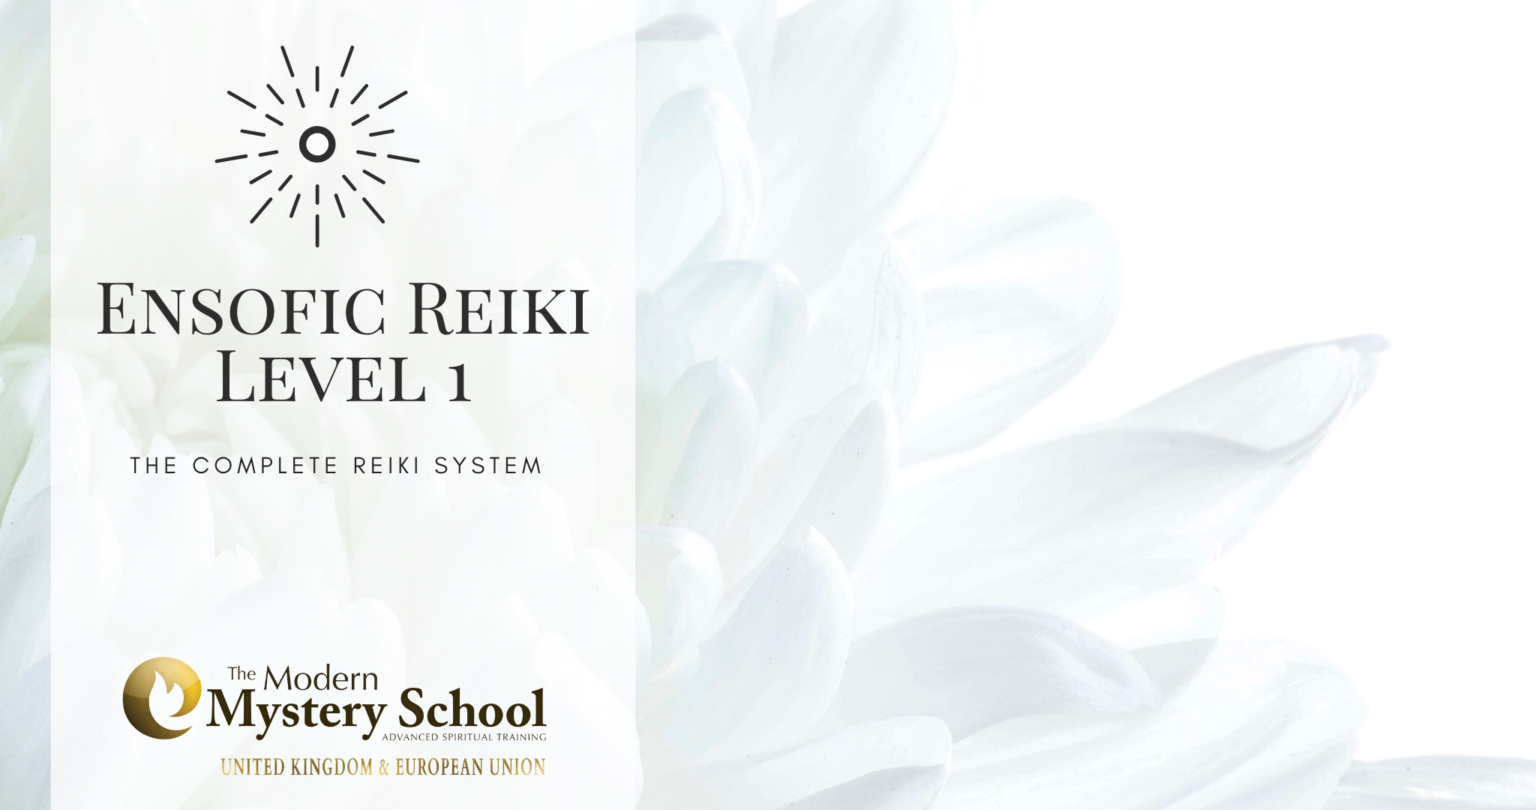 Ensofic Reiki Level 1